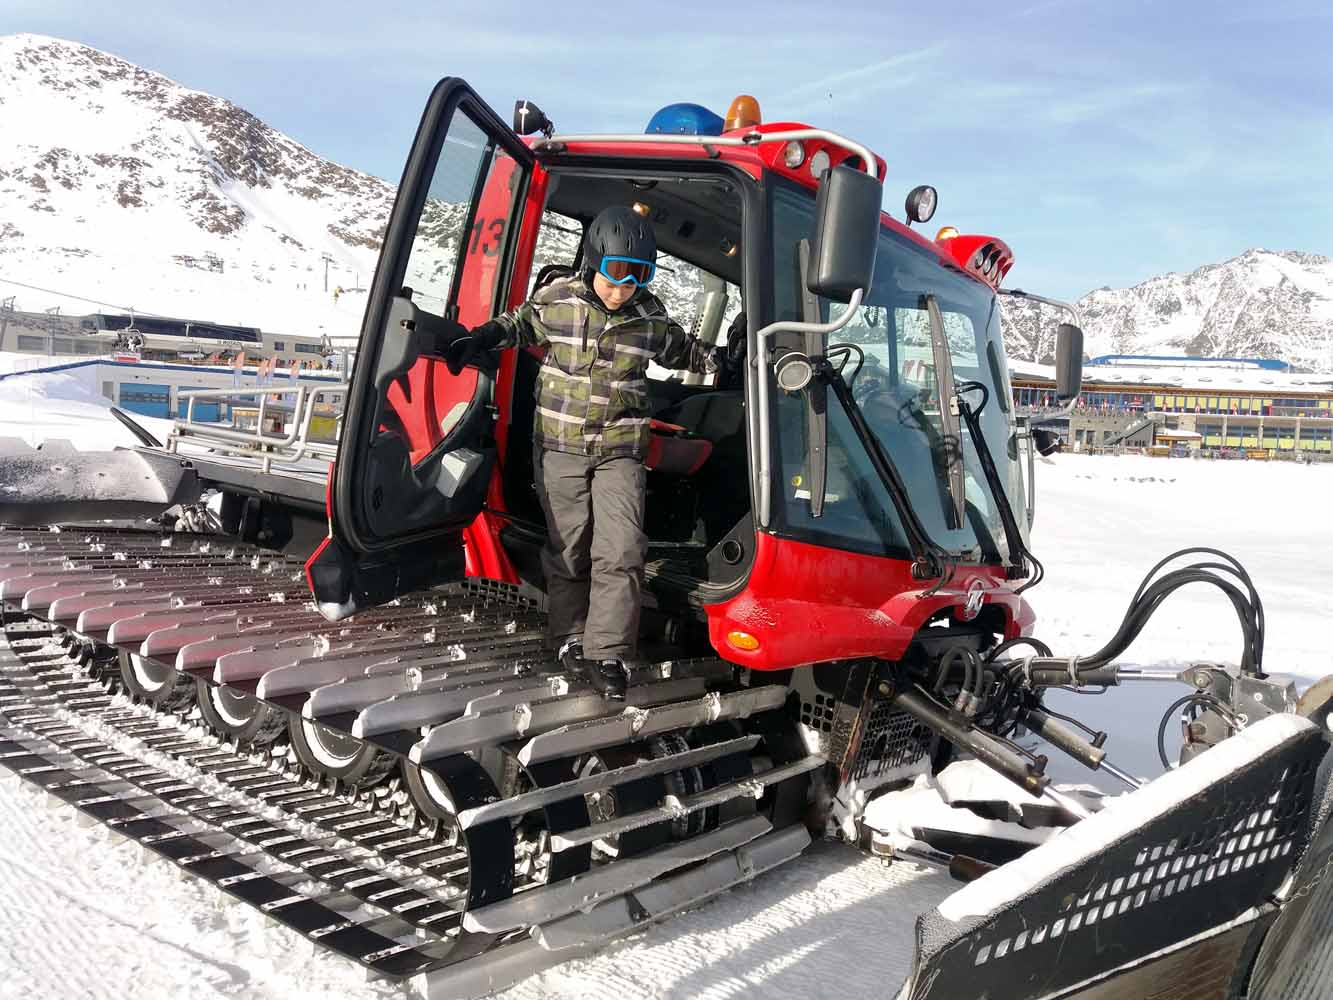 Pistenbully am Stubaier Gletscher